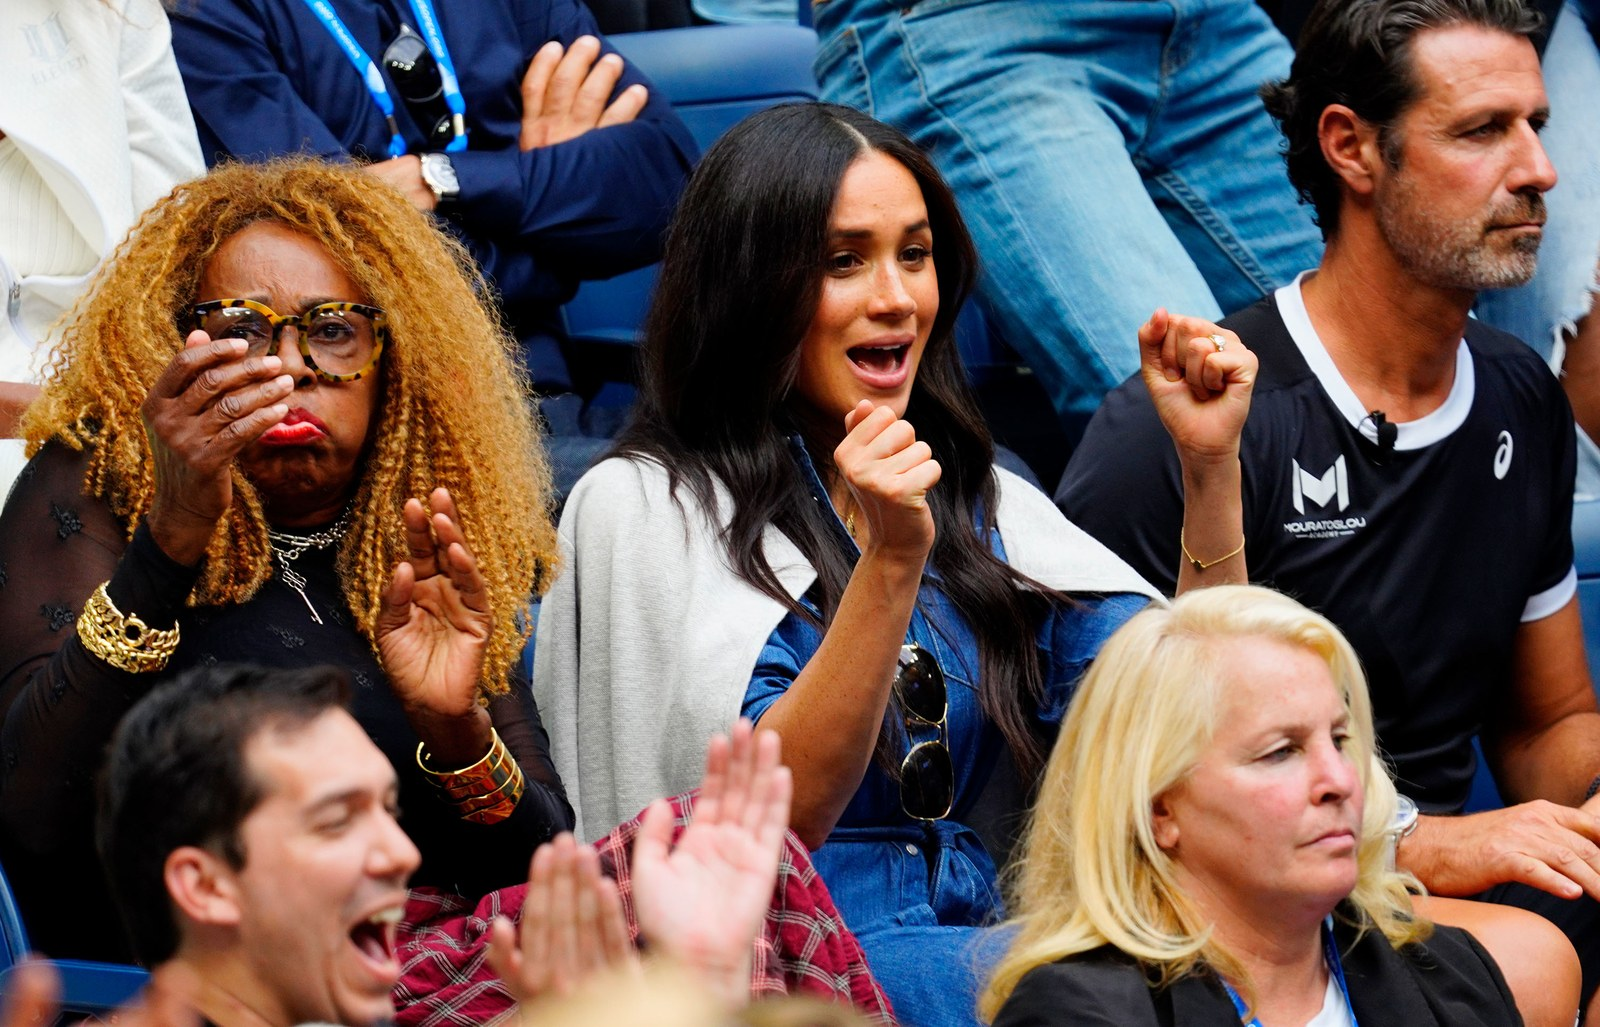 Meghan Duchess of Sussex watches Serena Williams at the 2019 US Open Women's final